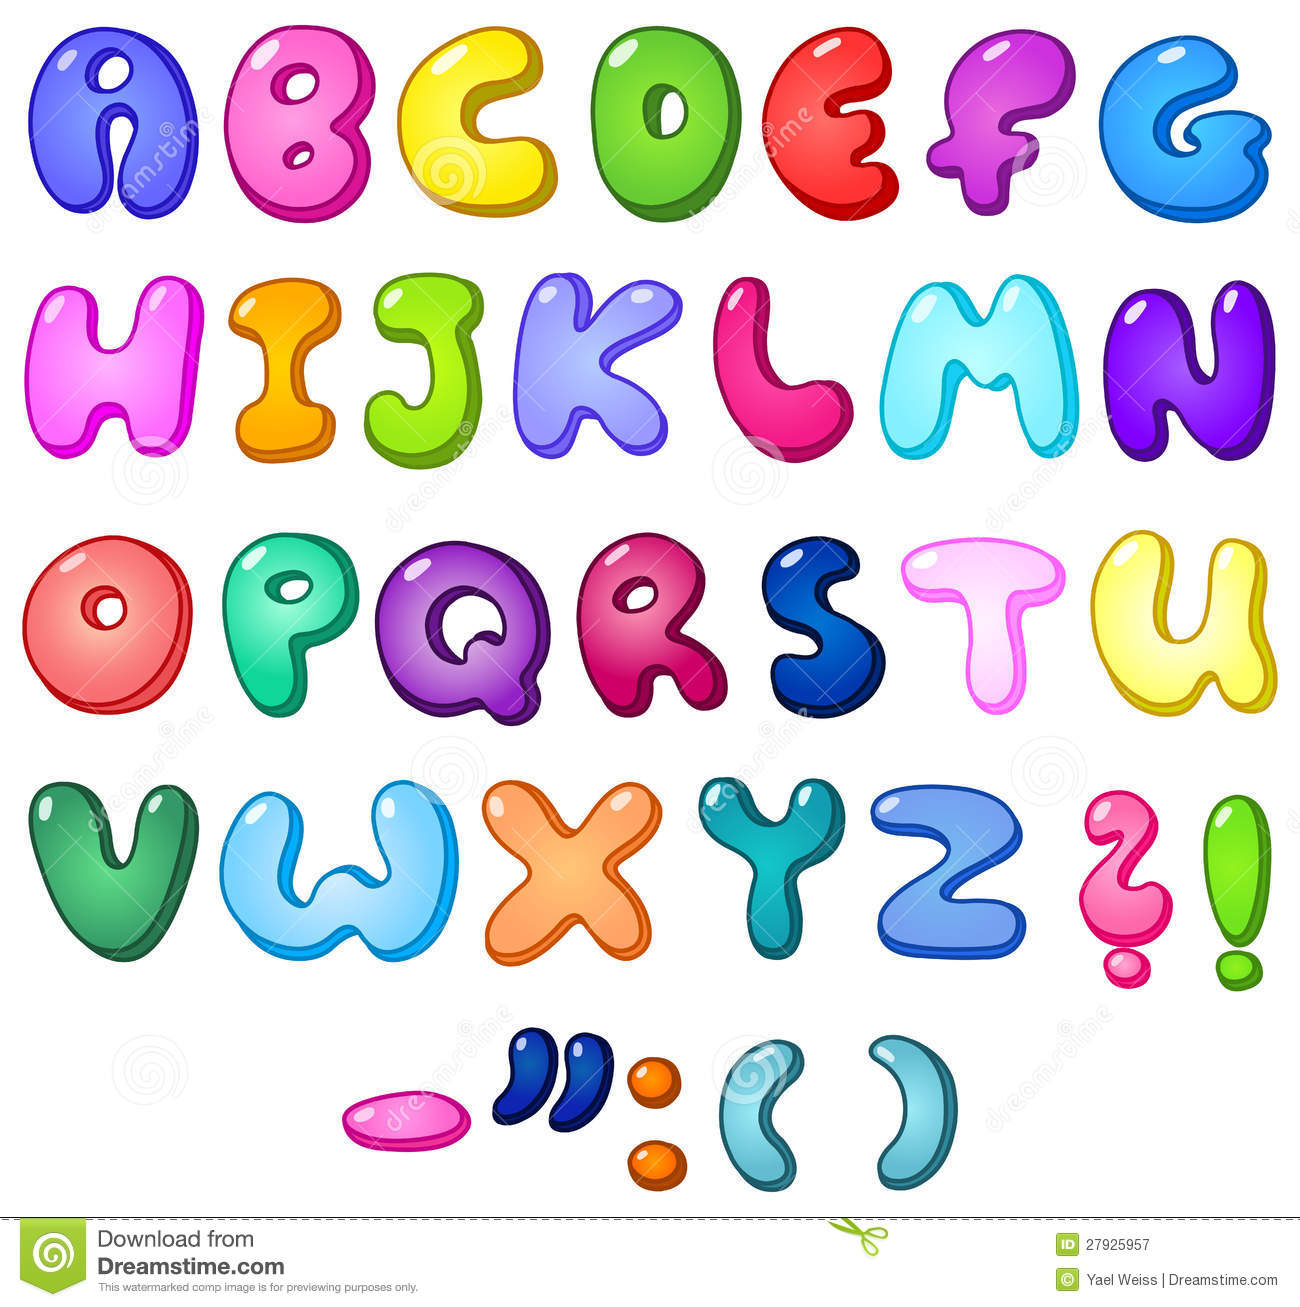 Worksheets The Alphabet alphabet lessons tes teach alphabet